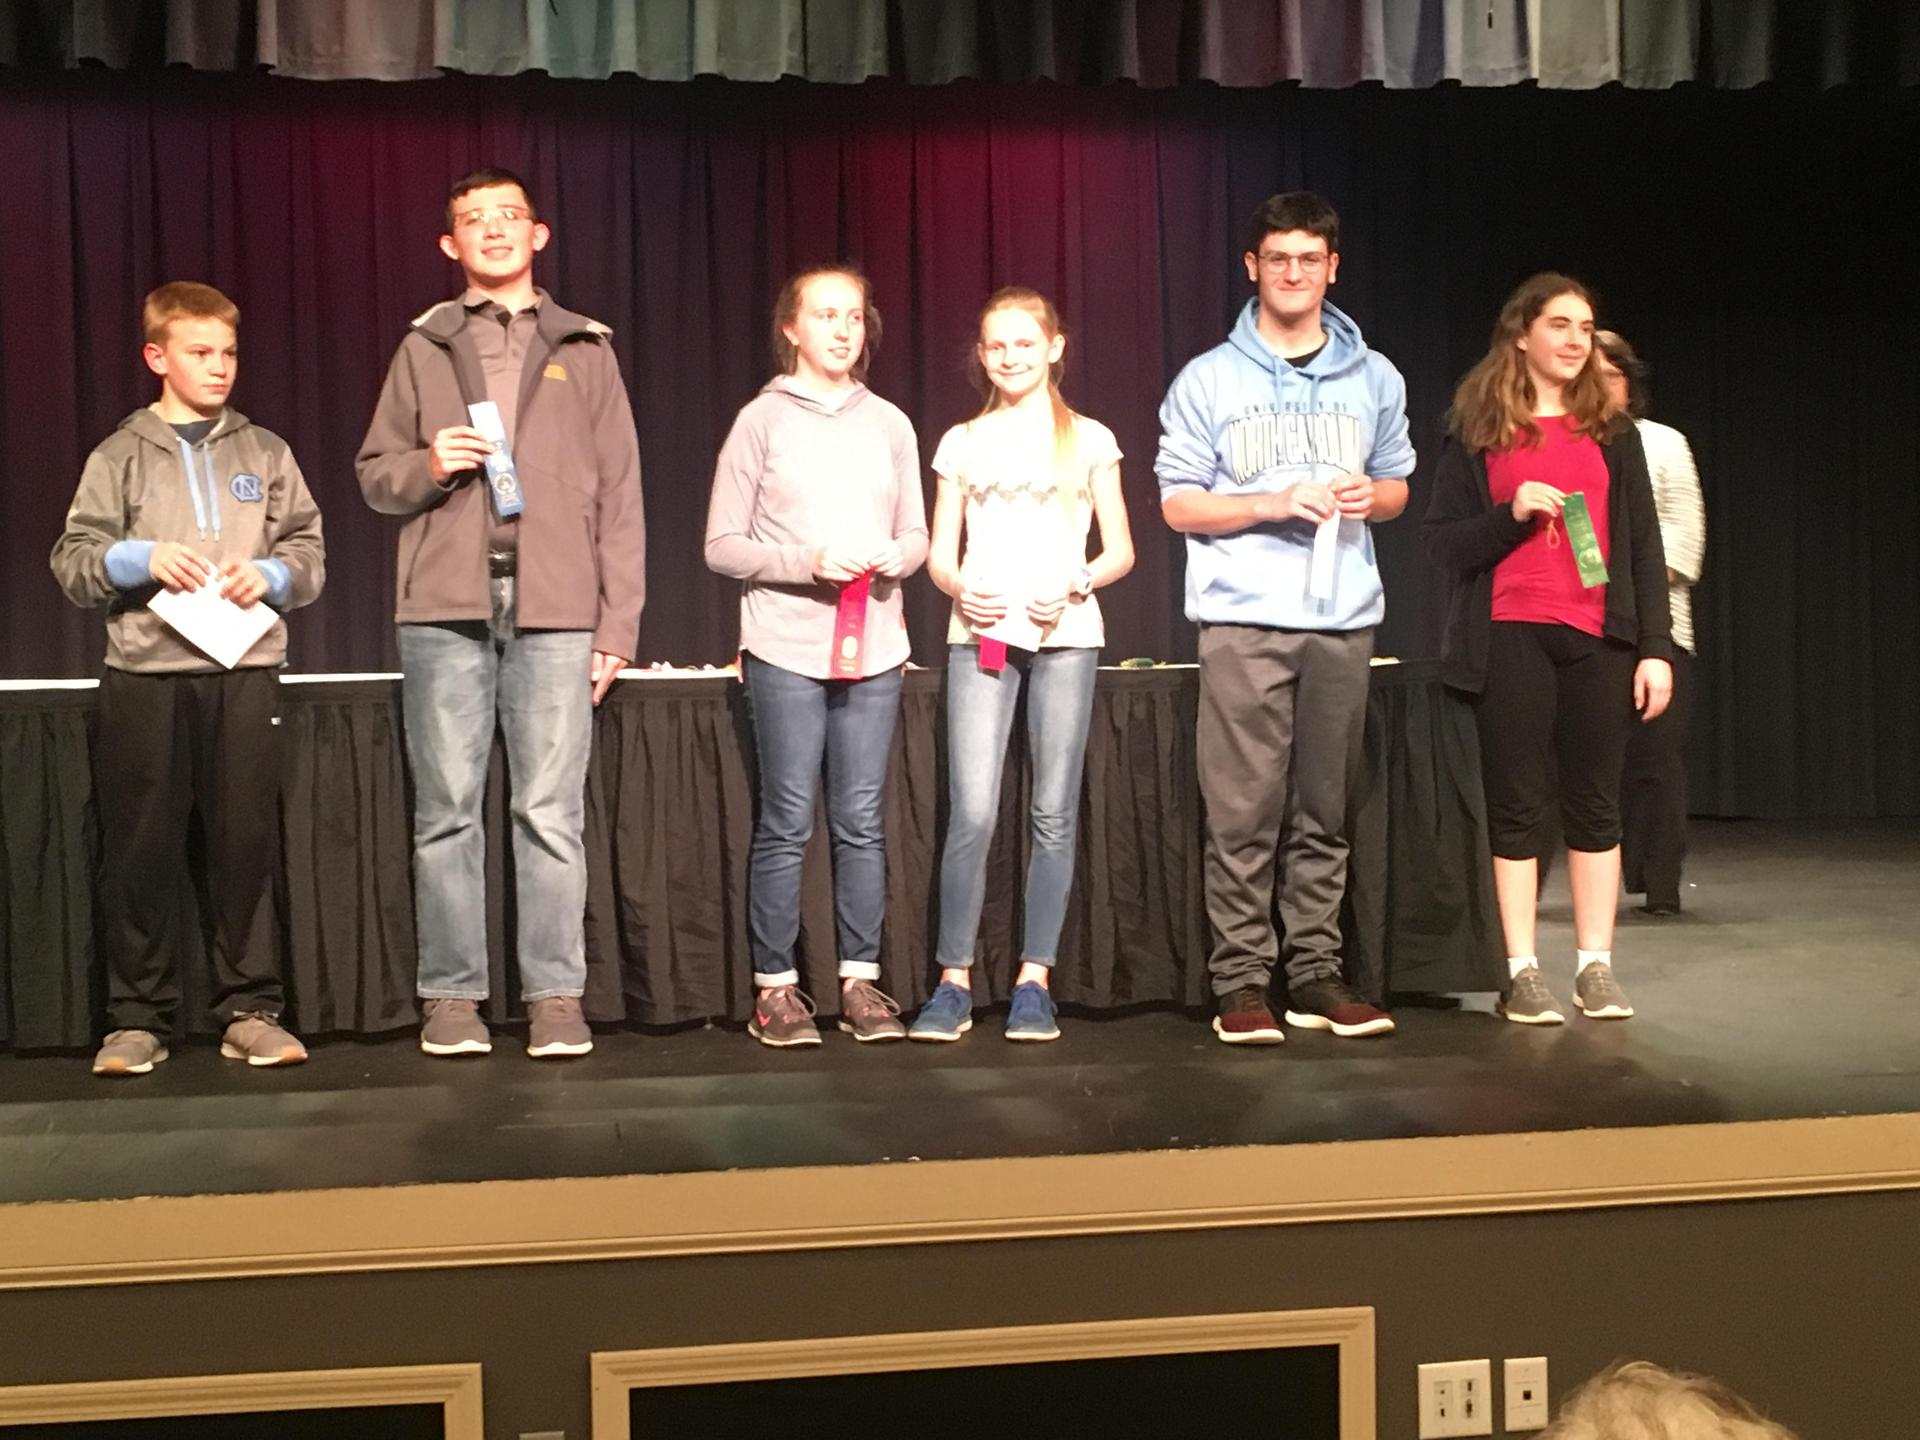 Students on stage at Science Fair Awards Presentation.